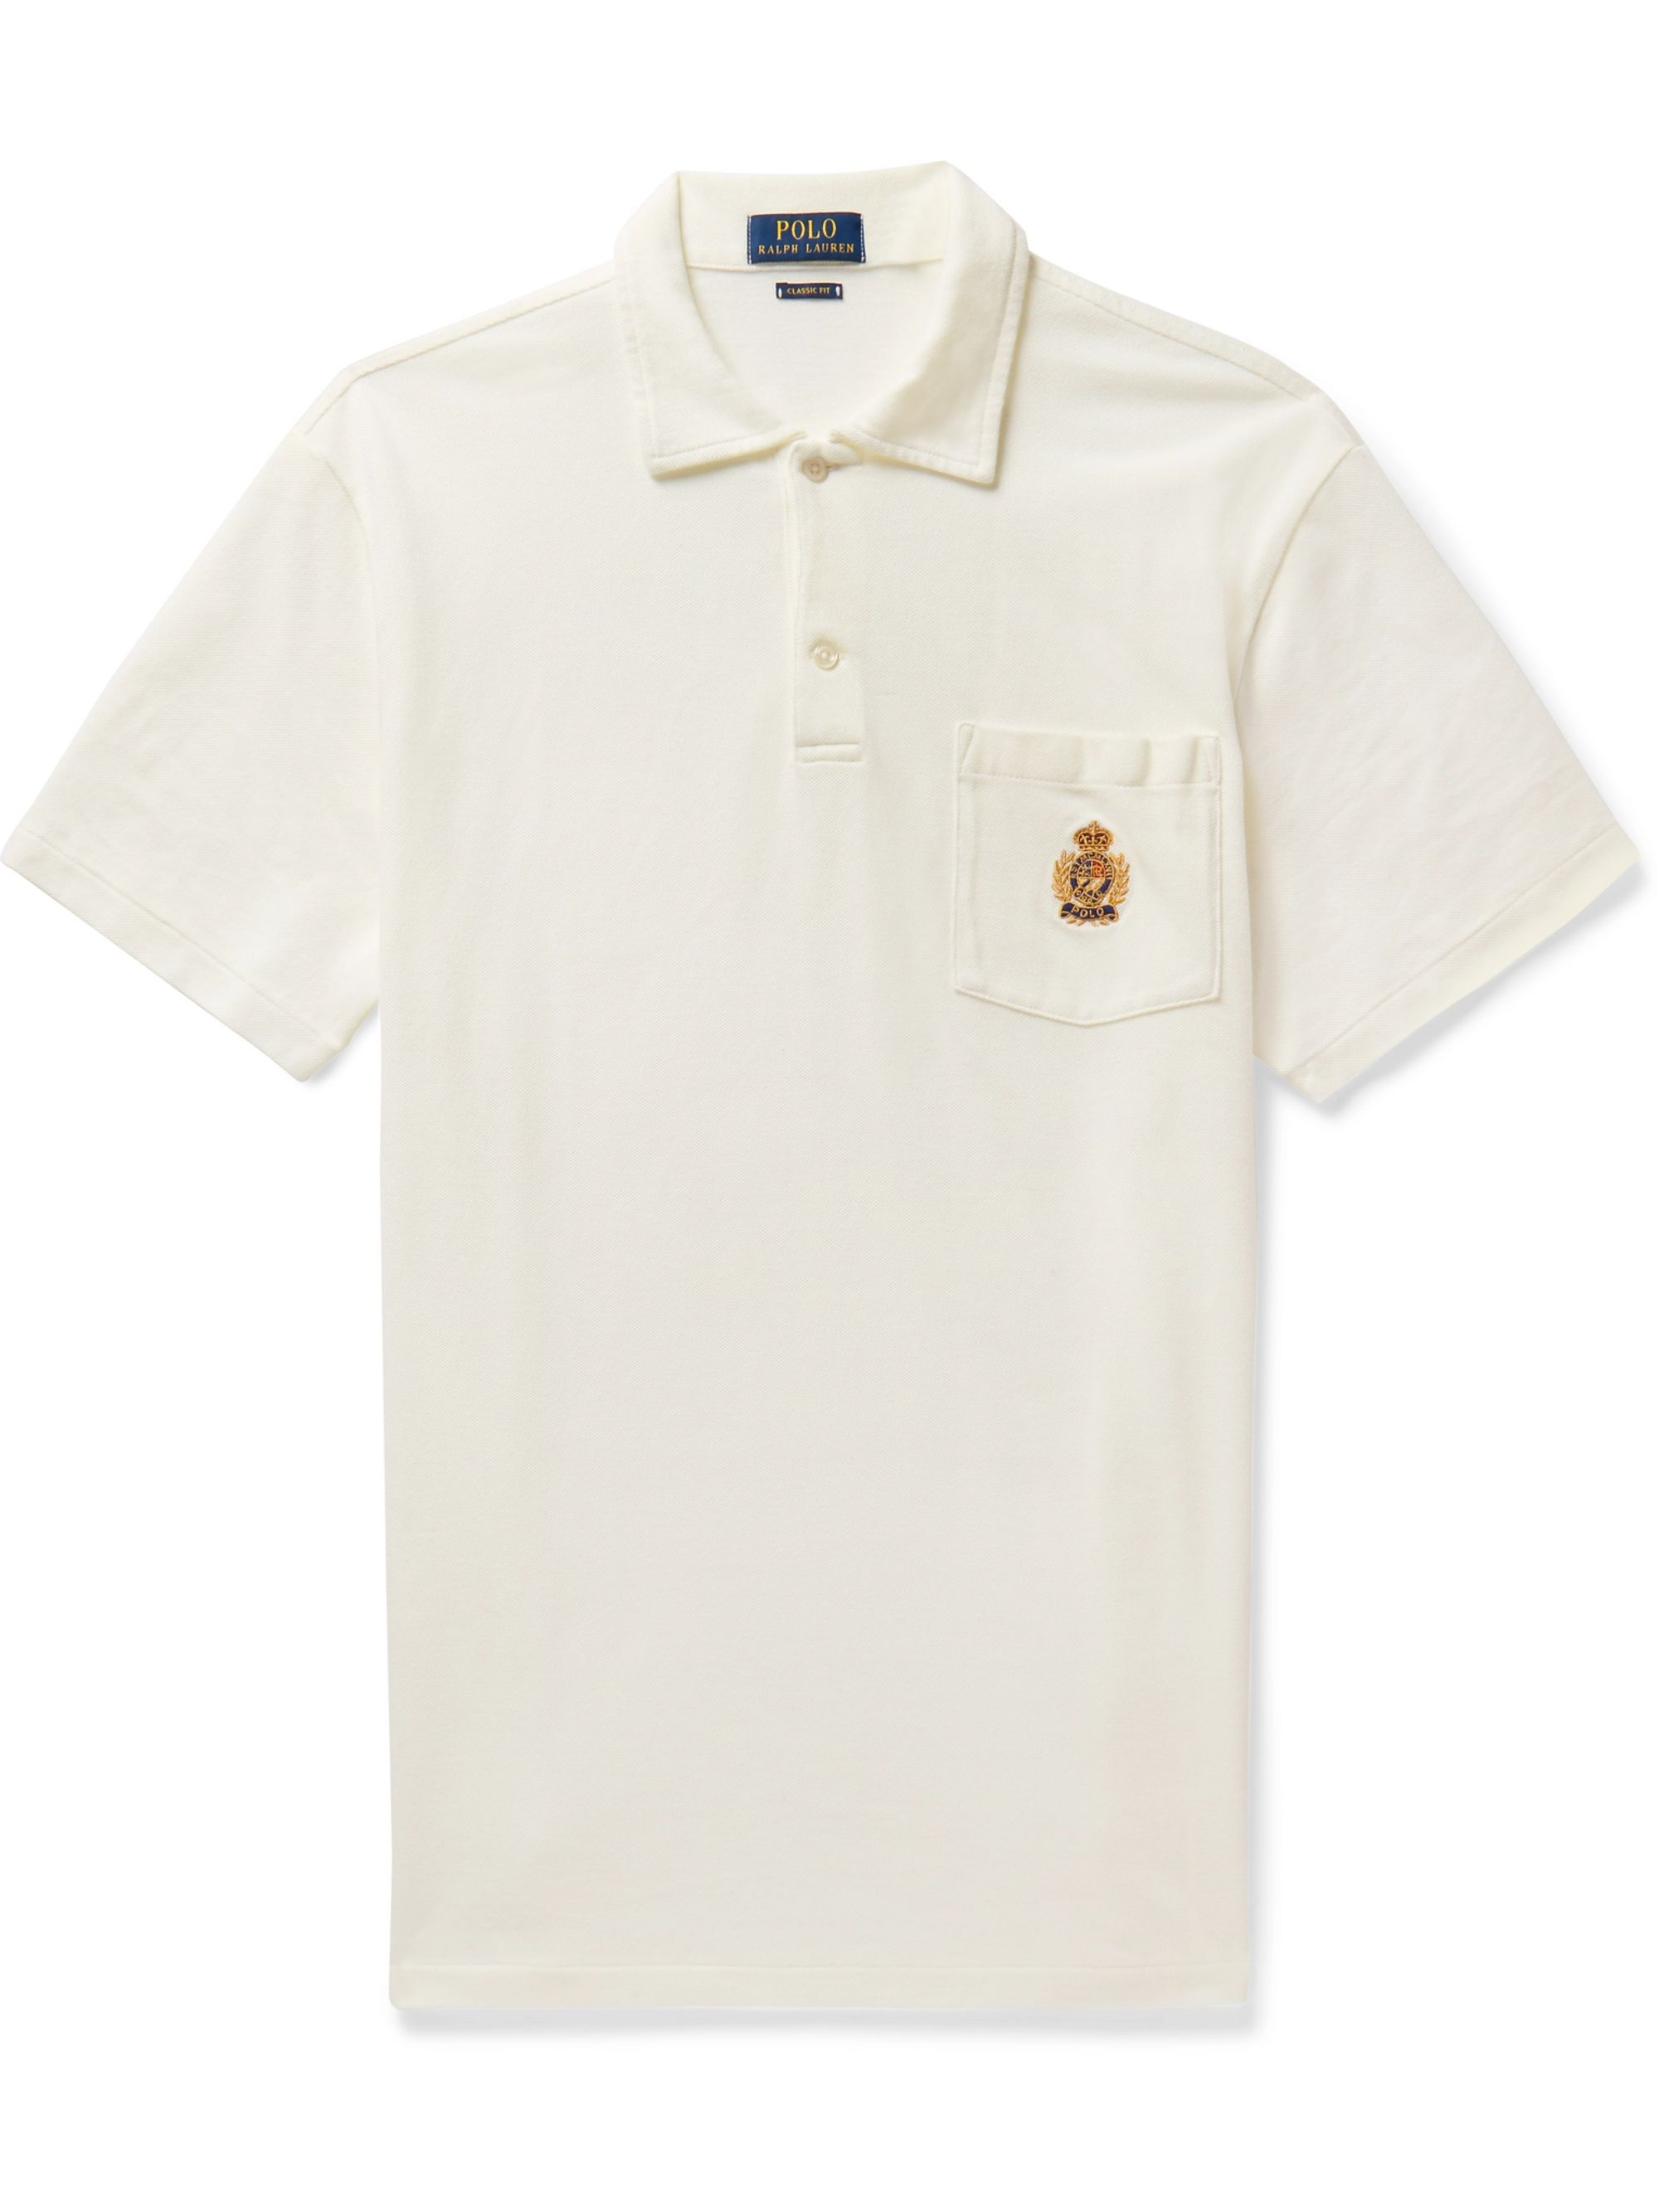 Polo Ralph Lauren Cotton-Piqué Polo Shirt